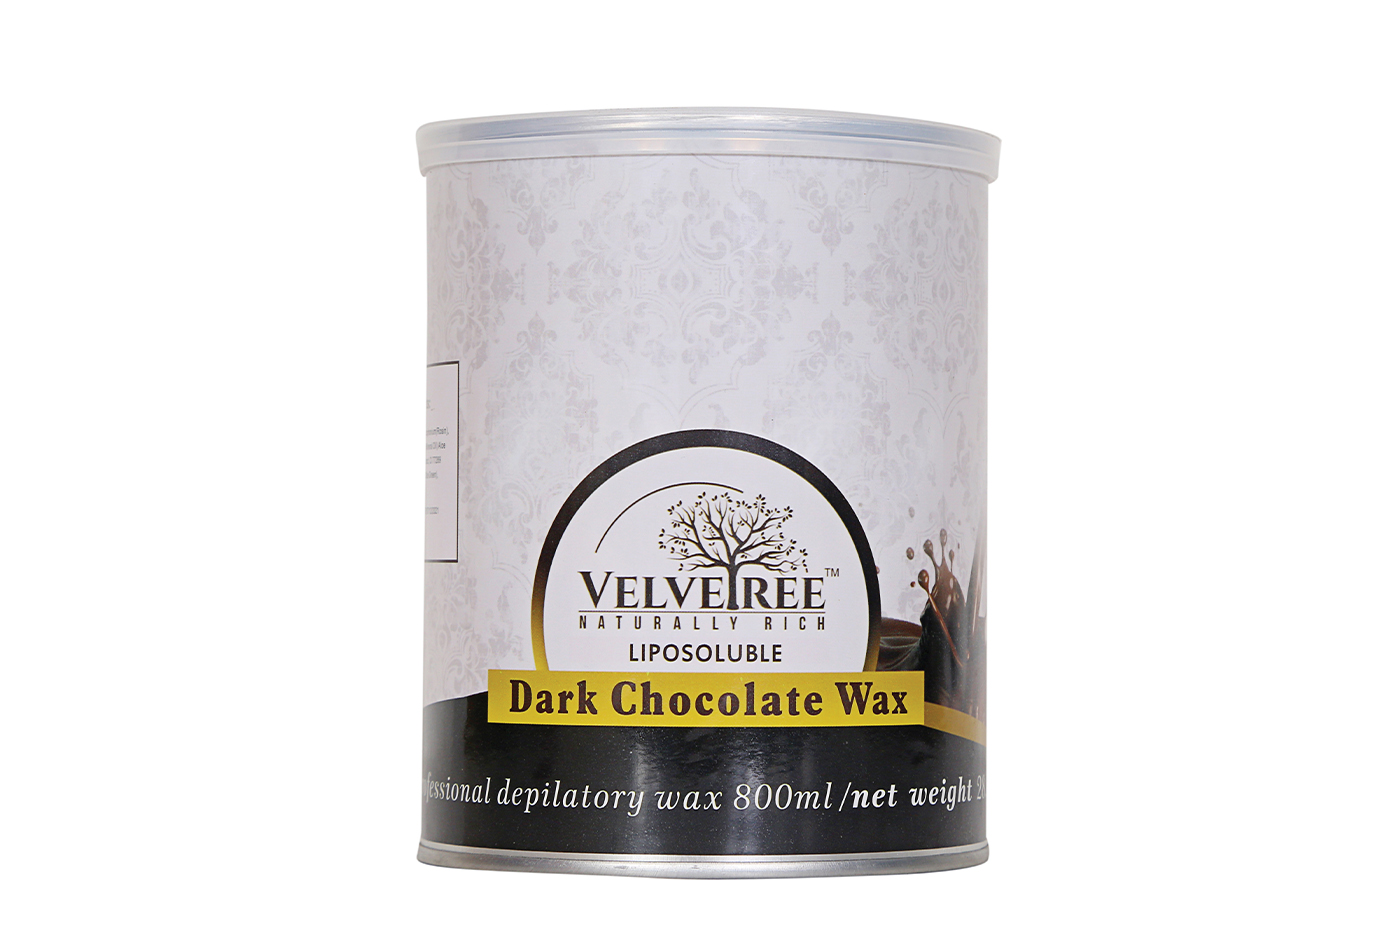 Velvetree presents wax for smooth skin